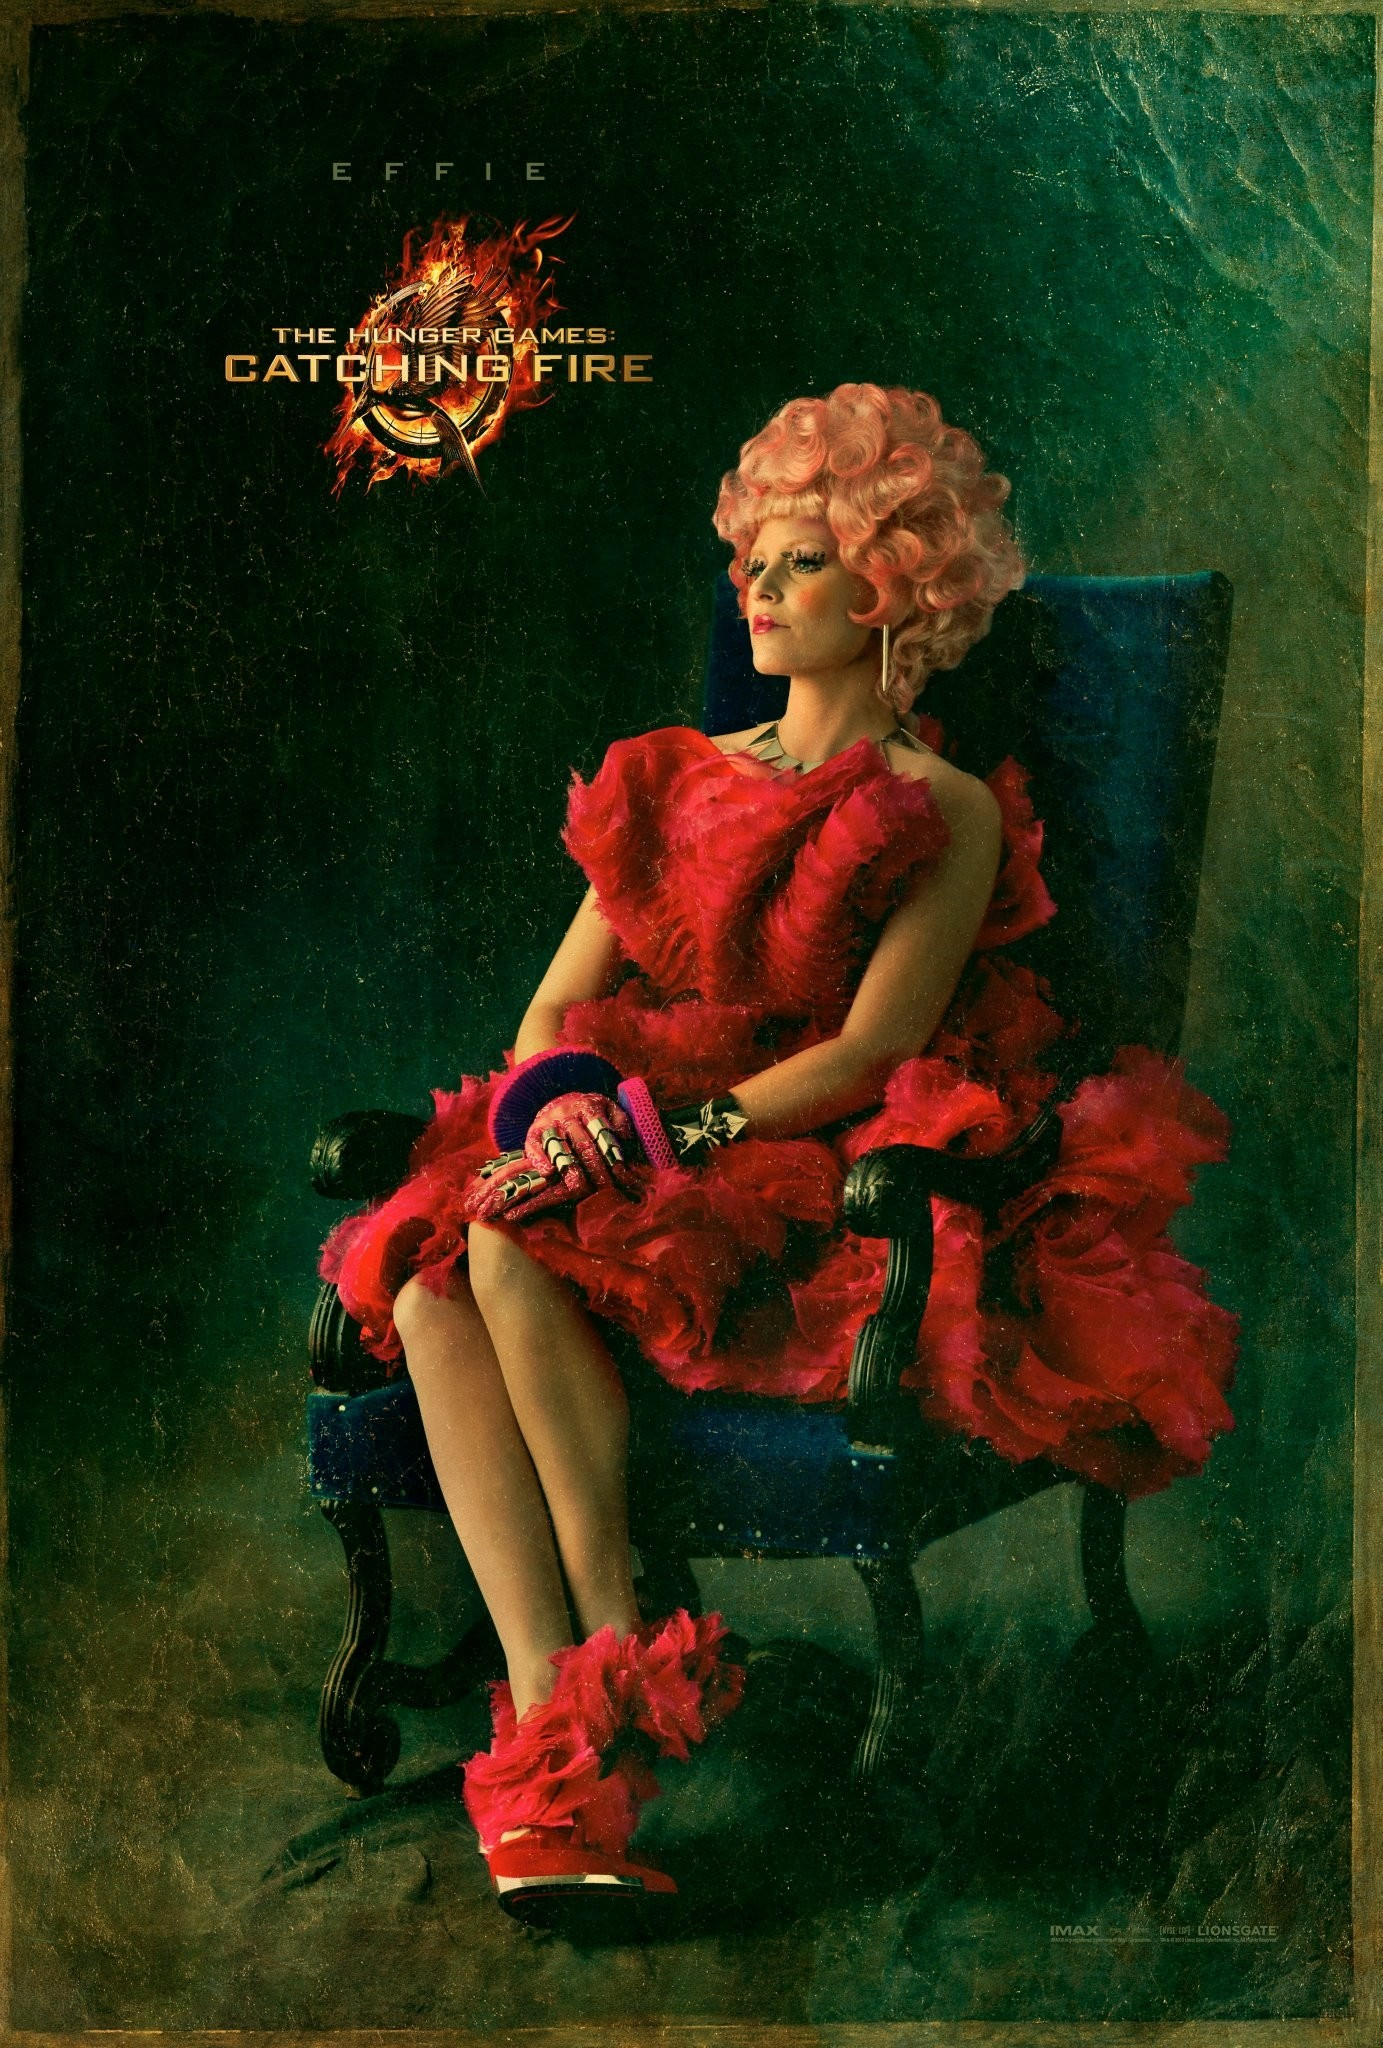 The Hunger Games Catching Fire - Poster - 004 - Effie